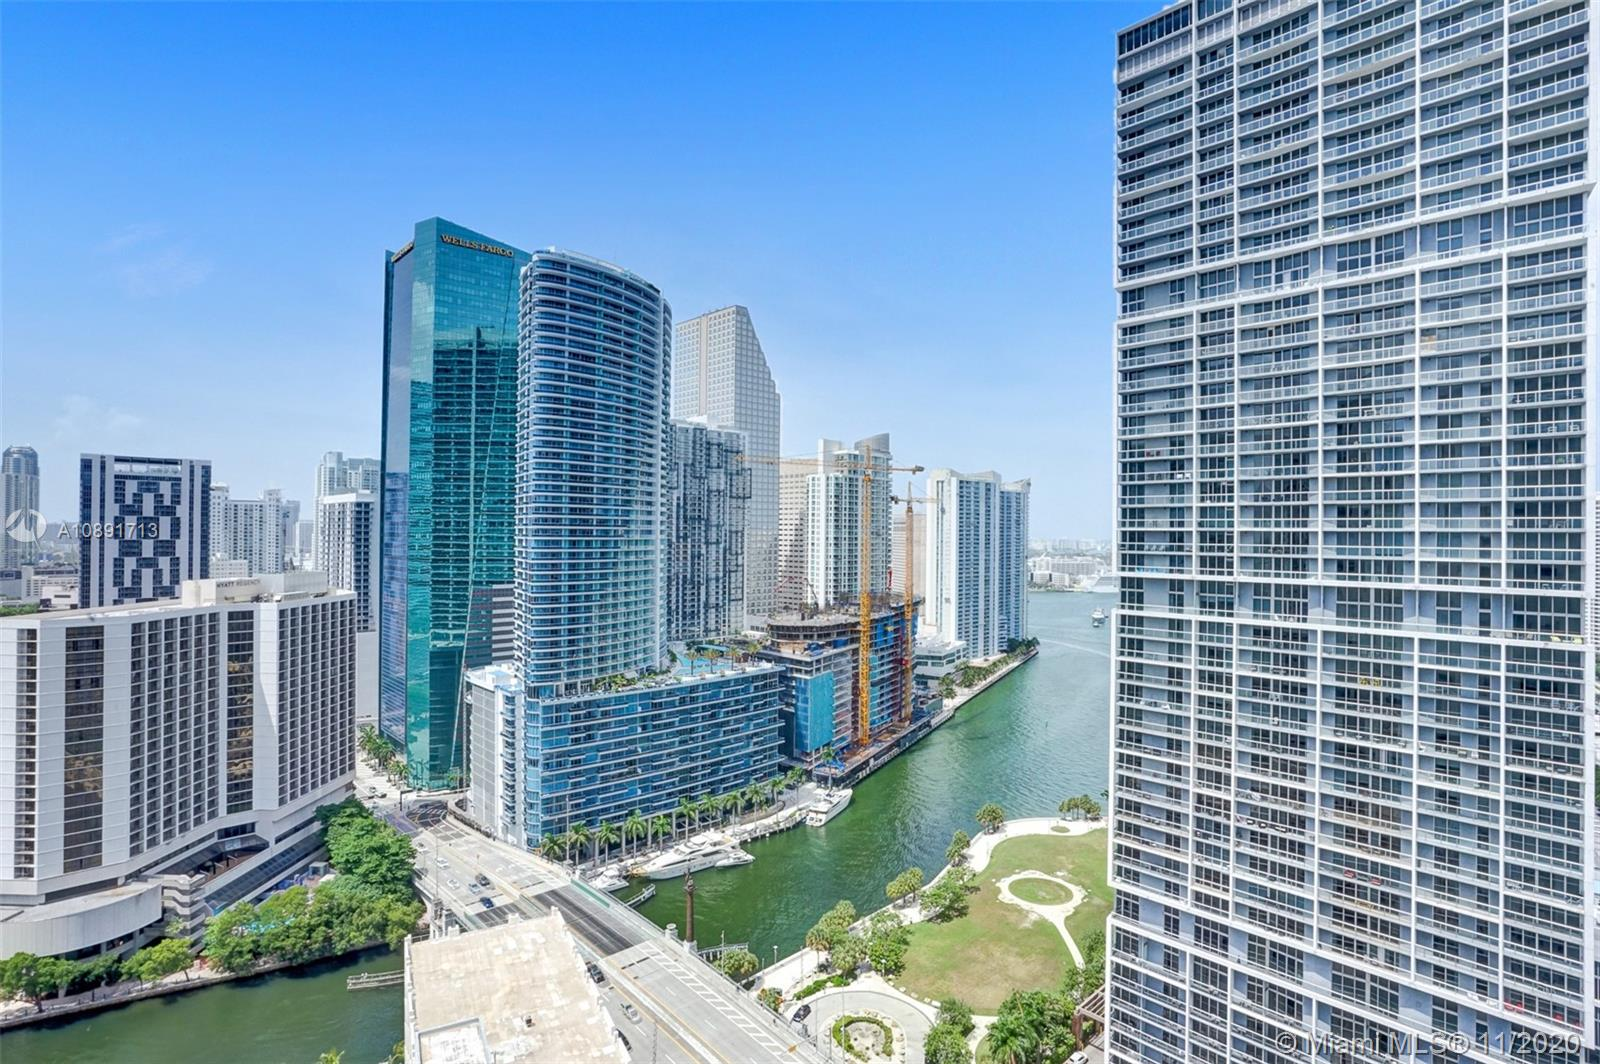 Come see this Spectacular split floorplan unit at 500 Brickell Condo.  It is the most remodeled unit I have seen in the whole development.  Marble floors throughout, Custom ceilings with accent LED lighting, TV's built in to Bathroom walls, Venetian plaster accent walls, Built out Custom Closets & Motorized shades on all windows.  Unit faces the mouth of the Miami River leading to Biscayne Bay, which the Water can be seen from both bedrooms & living room.  A NE Water View that will never be taken away in the future.The development is located right on Brickell Ave. Cafes, Restaurants, Bars, Salon, Dry Cleaners, Banks, etc just downstairs in retail space of the bldg.  Amenities include 2 Pools, Large Gym, Spa, Movie Theatre, Billiards, Party Rooms, 24 HR Doorman & Business Center. Call Now